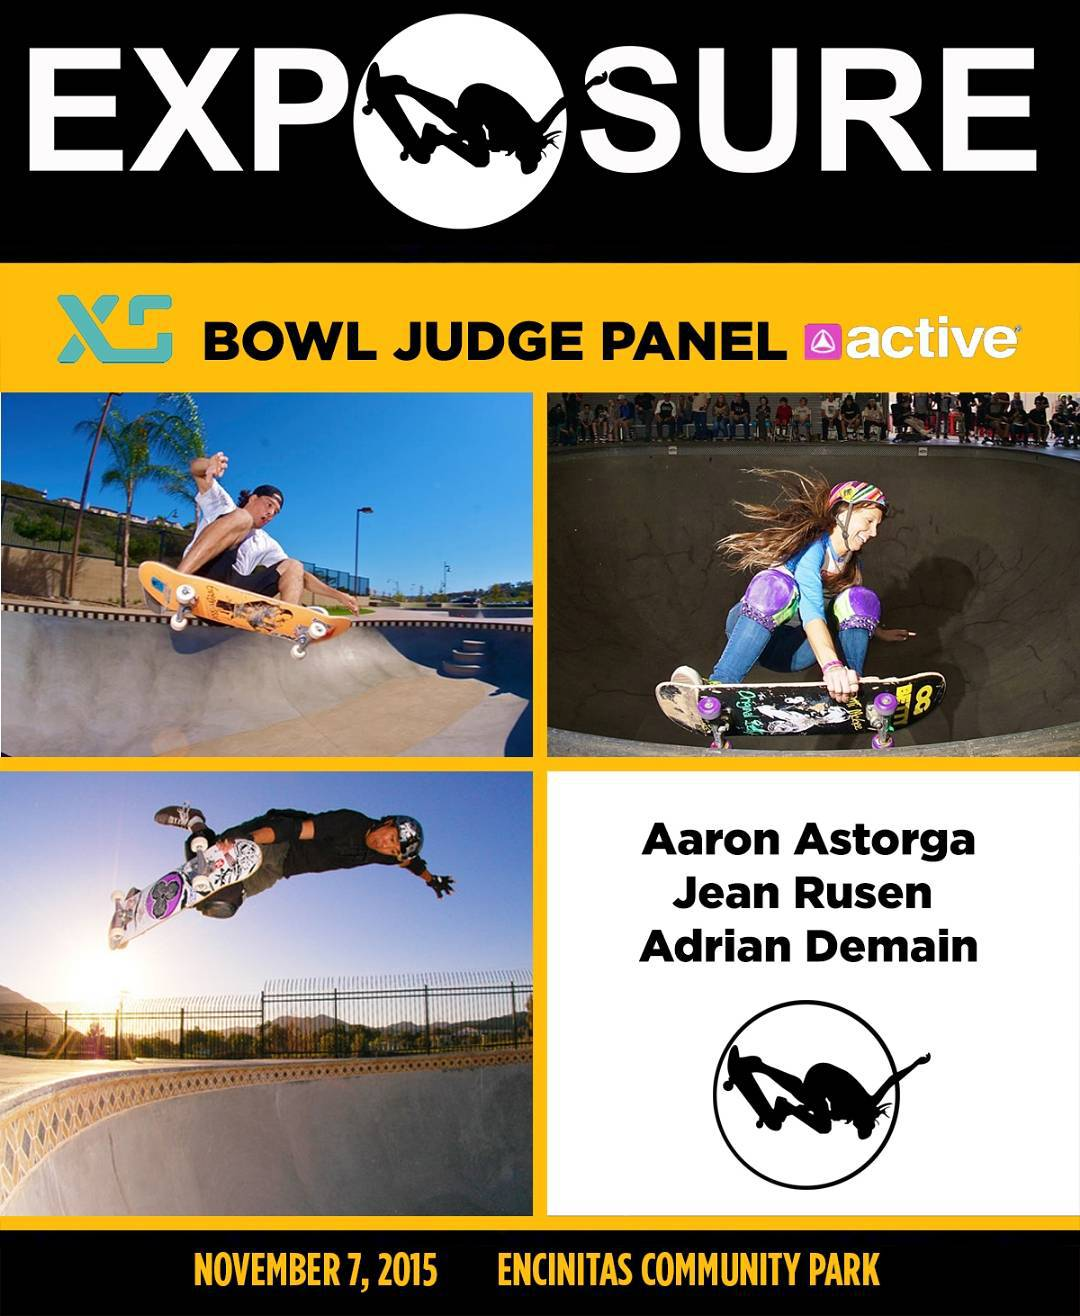 The @xshelmets x @activerideshop Bowl Competition will be judged by Aaron Astorga (@ask8s), Jean Rusen (@calamity_jean) and Adrian Demain (@adriandemain)!! Stoked to have such amazing people on the deck. Photos by: @sparagram and @radballs